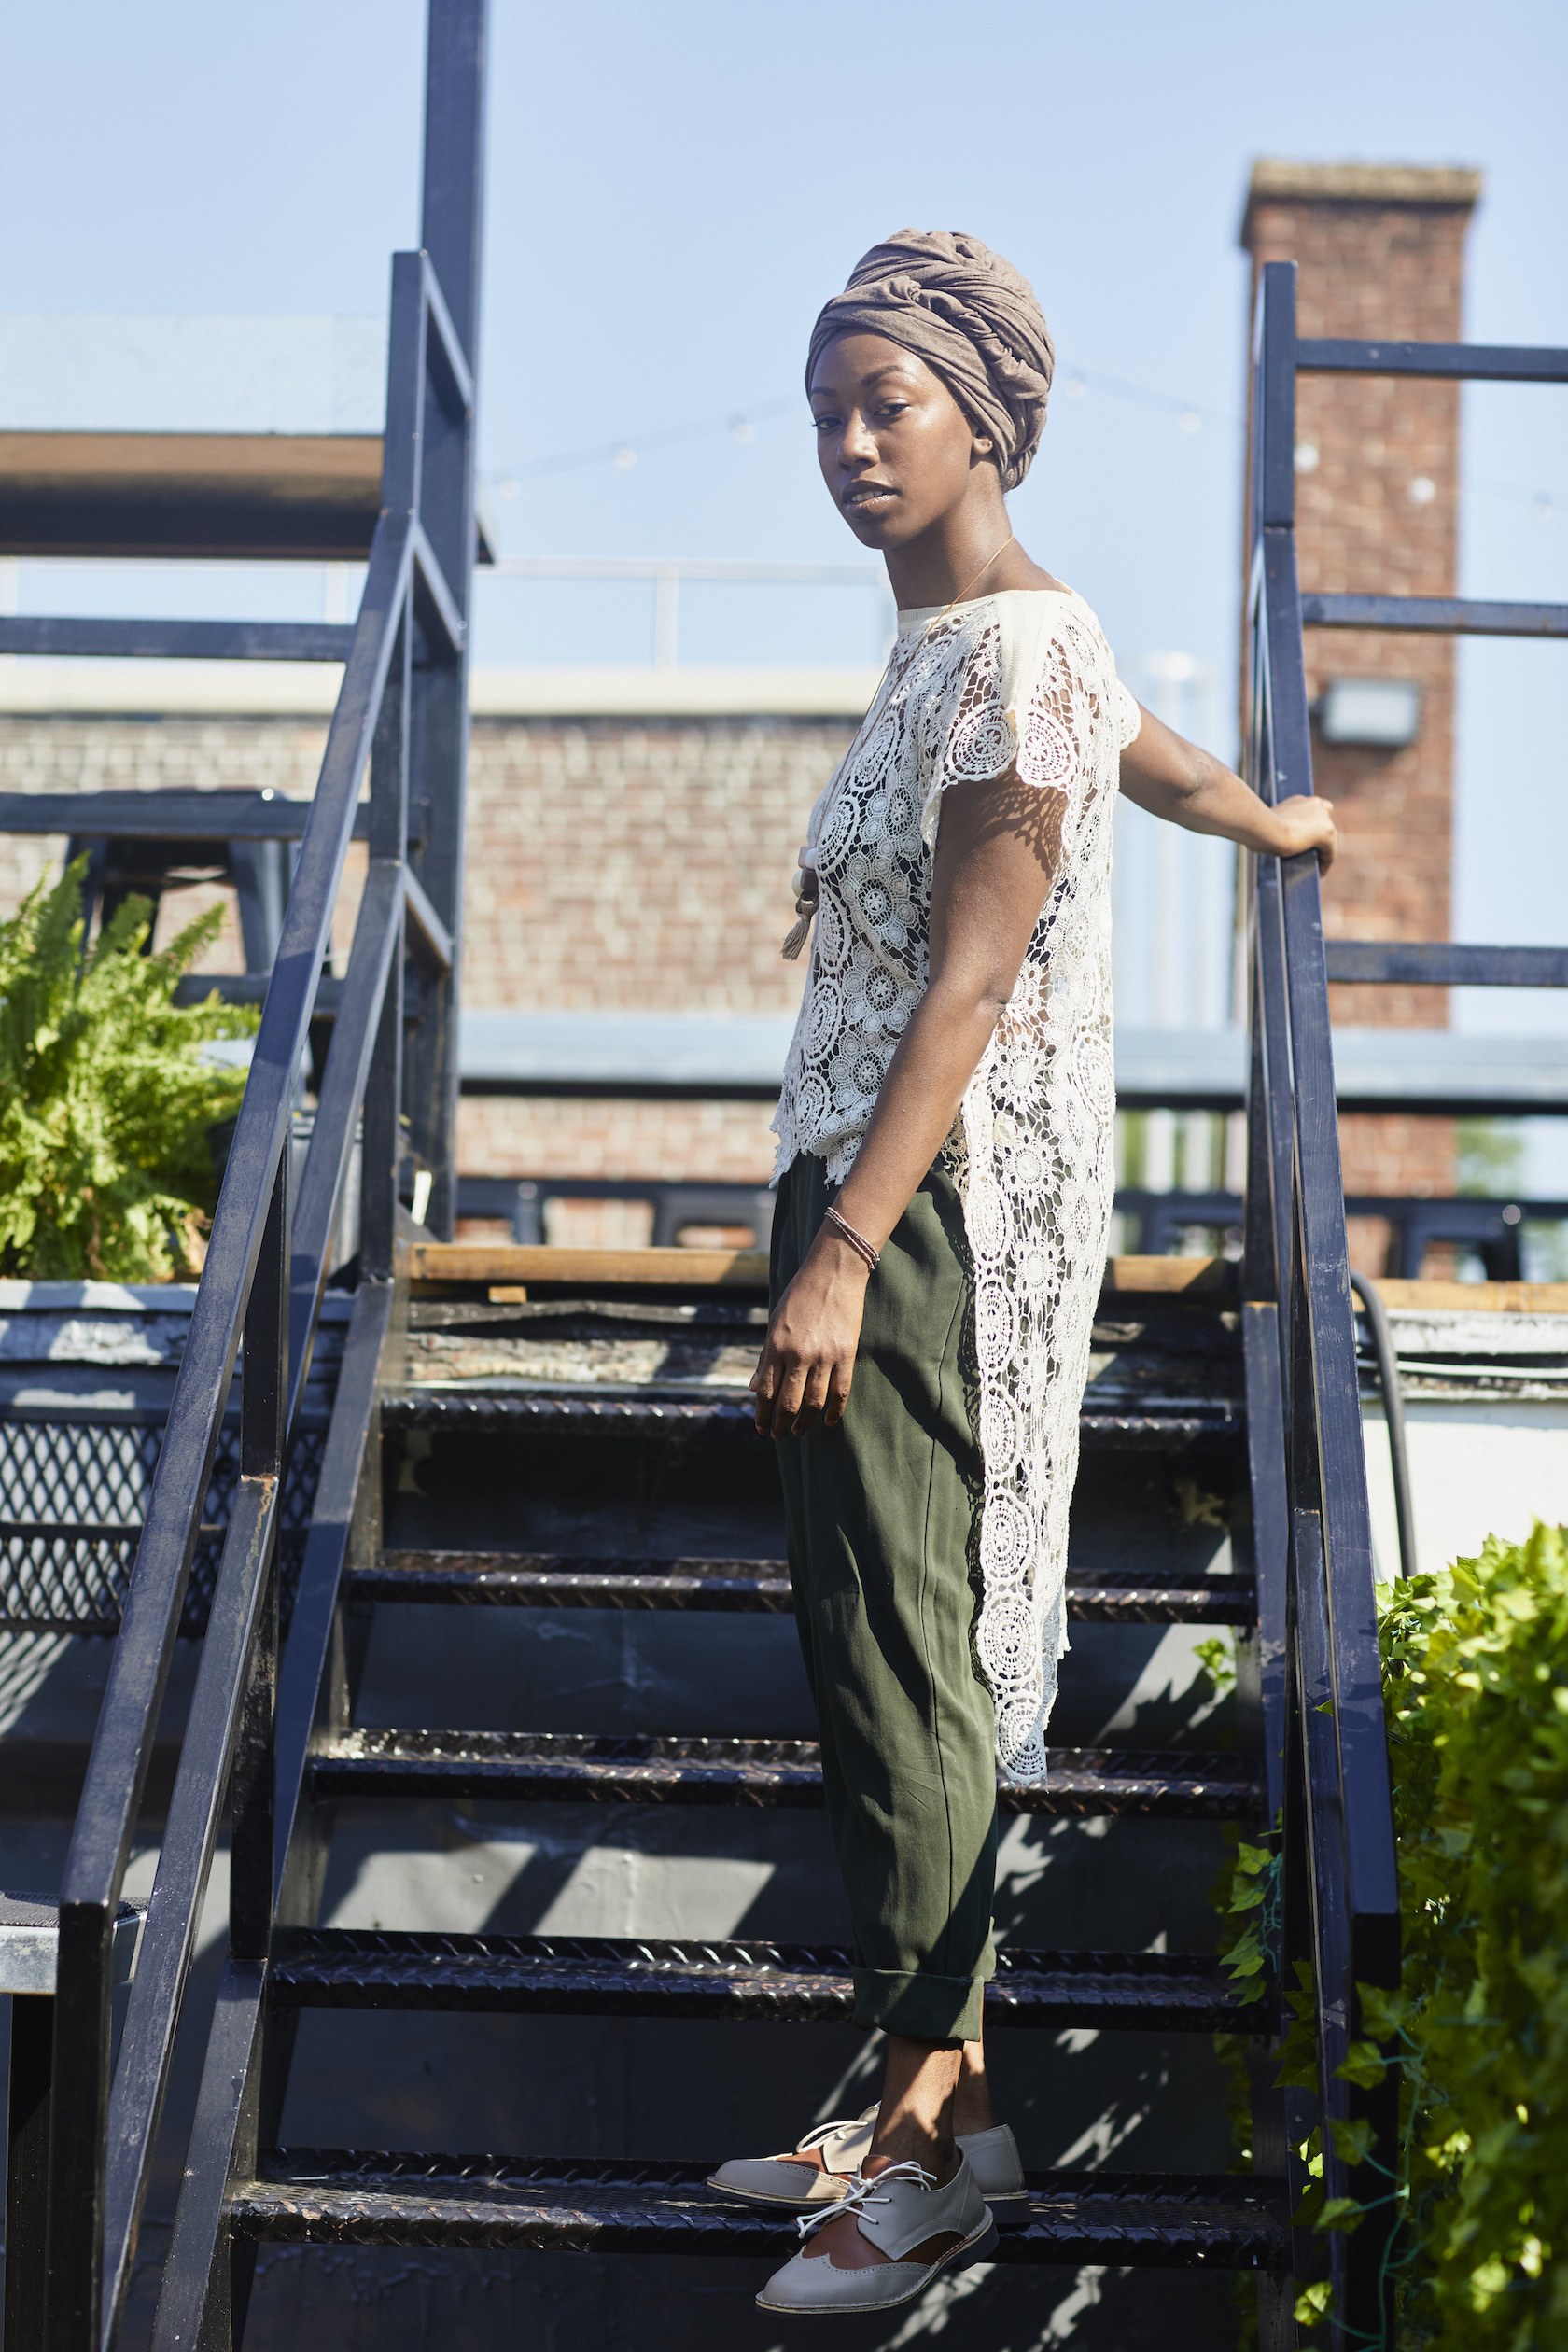 Casual professional outfit // A Week Of Outfits With Dominique Drakeford, Founder Of Melanin & Sustainable Style on The Good Trade